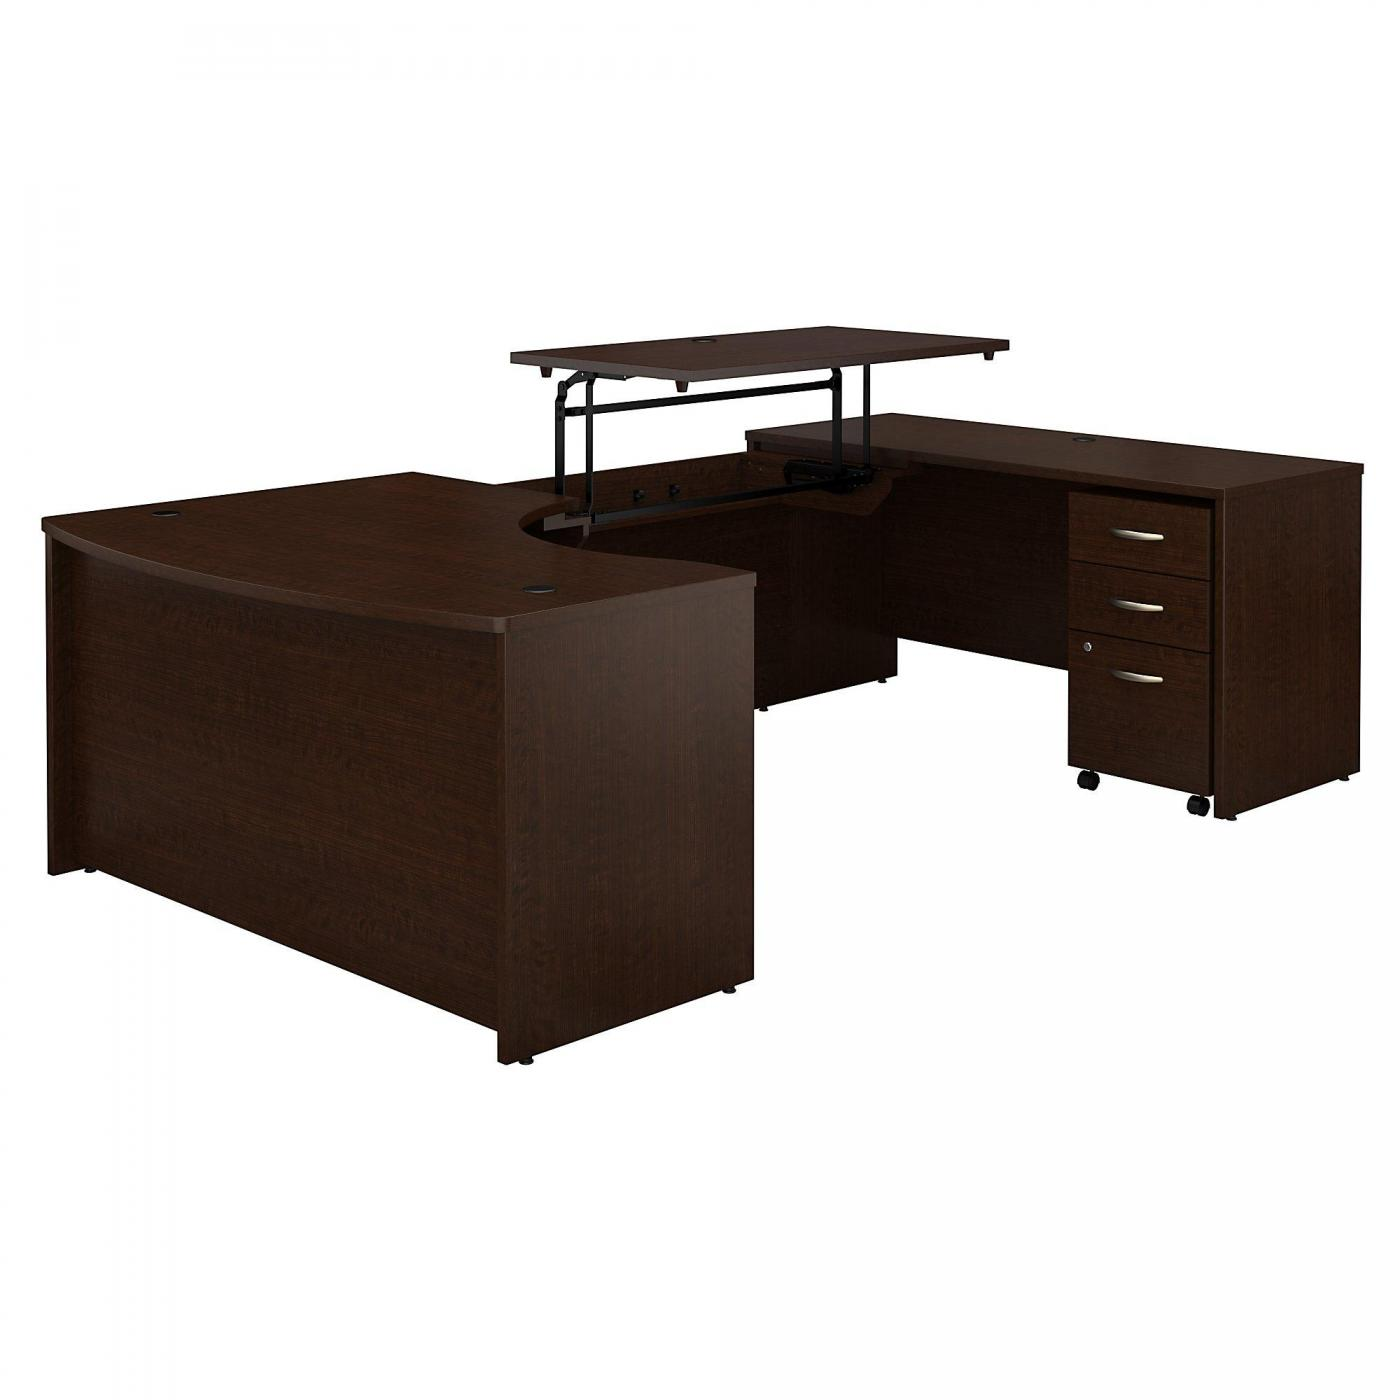 </b></font><b>BUSH BUSINESS FURNITURE SERIES C 60W X 43D LEFT HAND 3 POSITION SIT TO STAND U SHAPED DESK WITH MOBILE FILE CABINET. FREE SHIPPING. VIDEO:</font> <p>RATING:&#11088;&#11088;&#11088;</b></font></b>